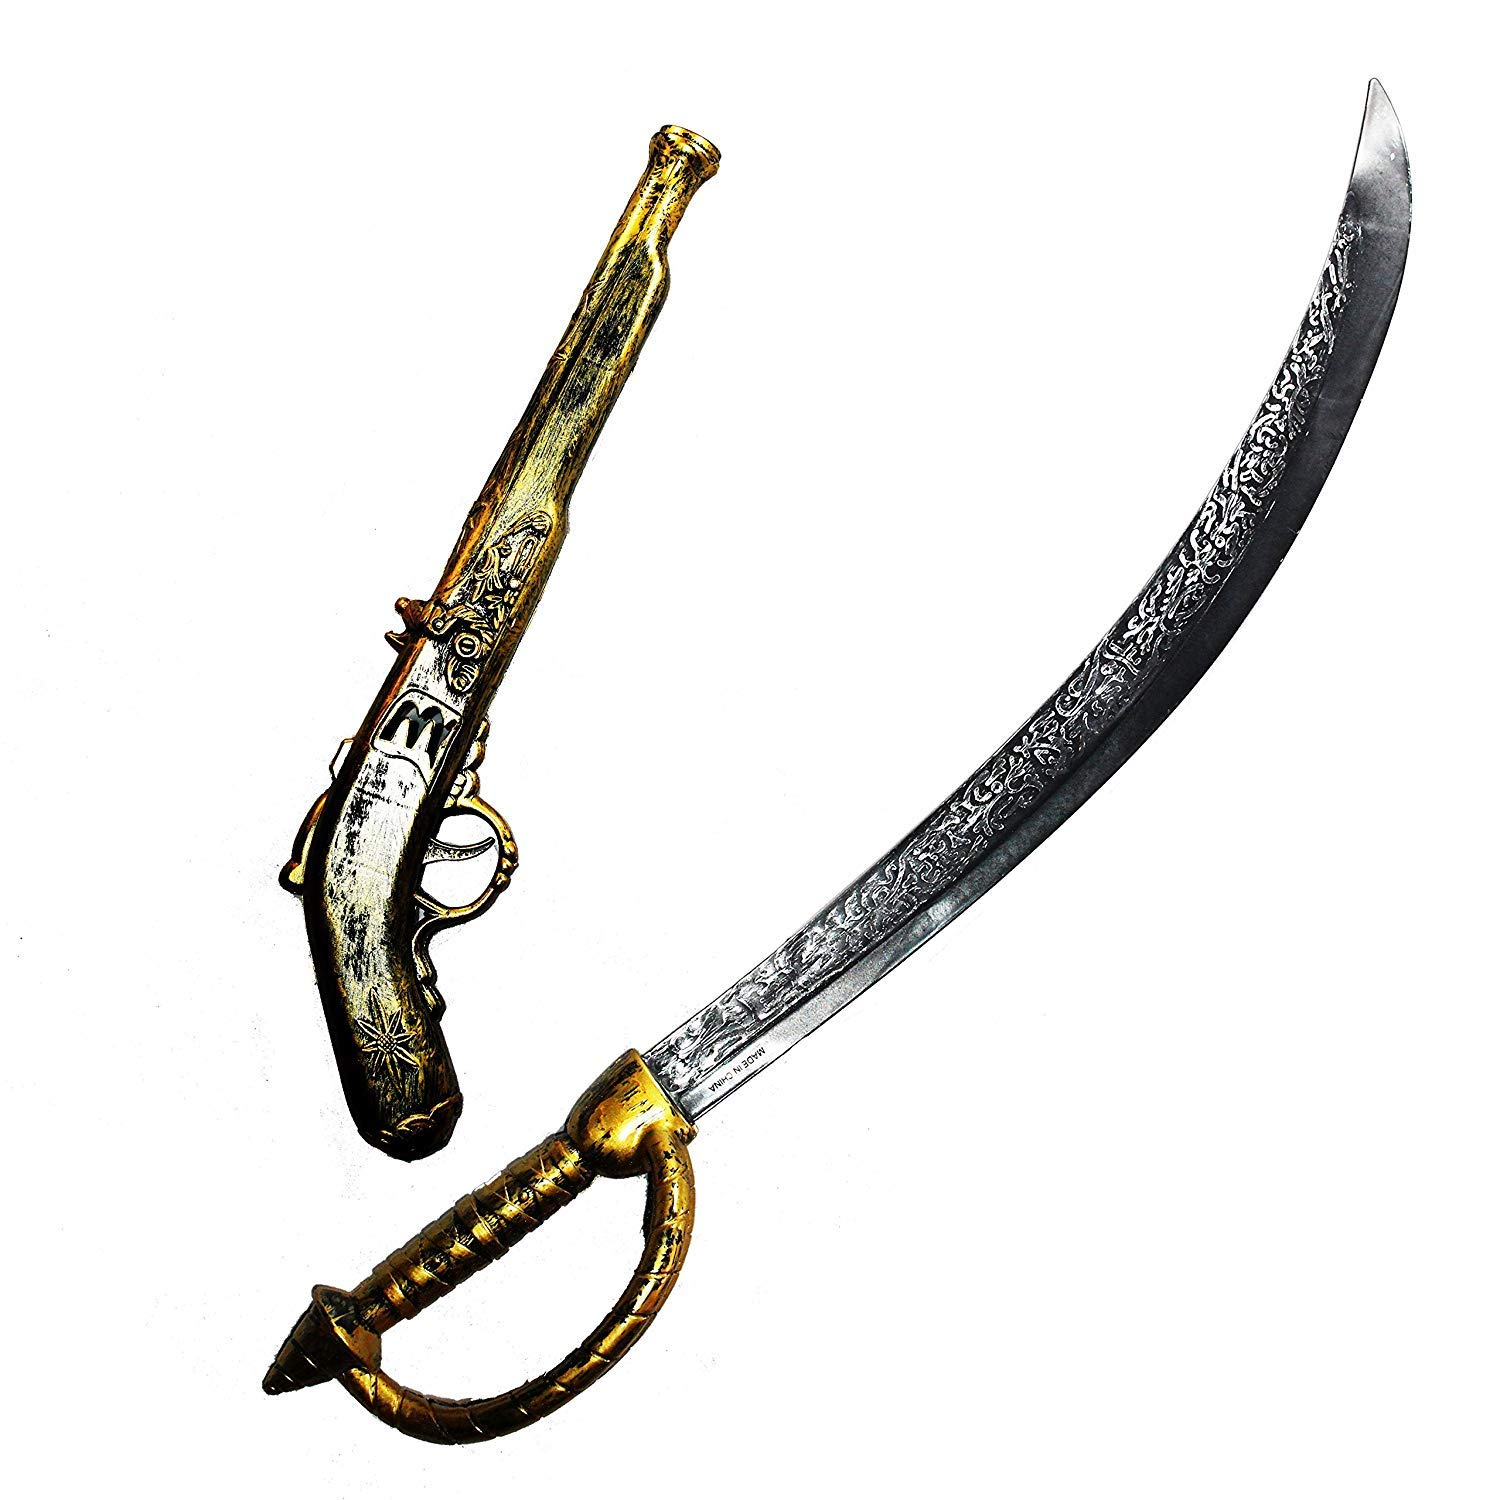 28 Inches Pirate Sword and 16 Inches Pirate Pistol Set